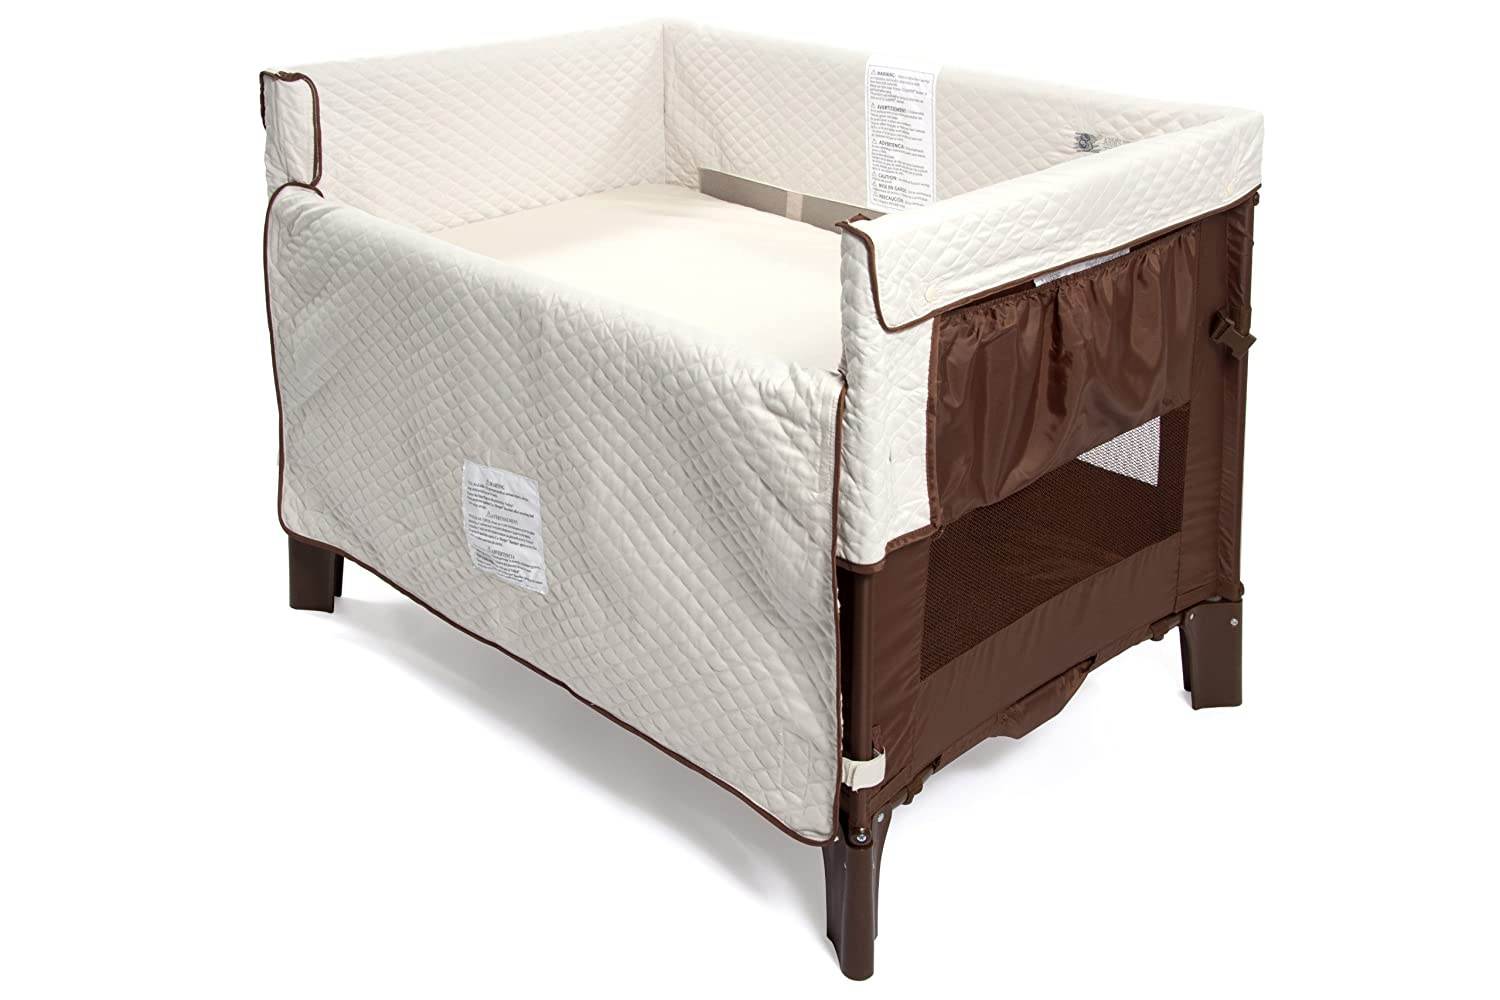 Amazon.com: Arm's Reach Co-Sleeper Original Bassinet, Coco Natural  (Discontinued by Manufacturer) (Discontinued by Manufacturer): Baby